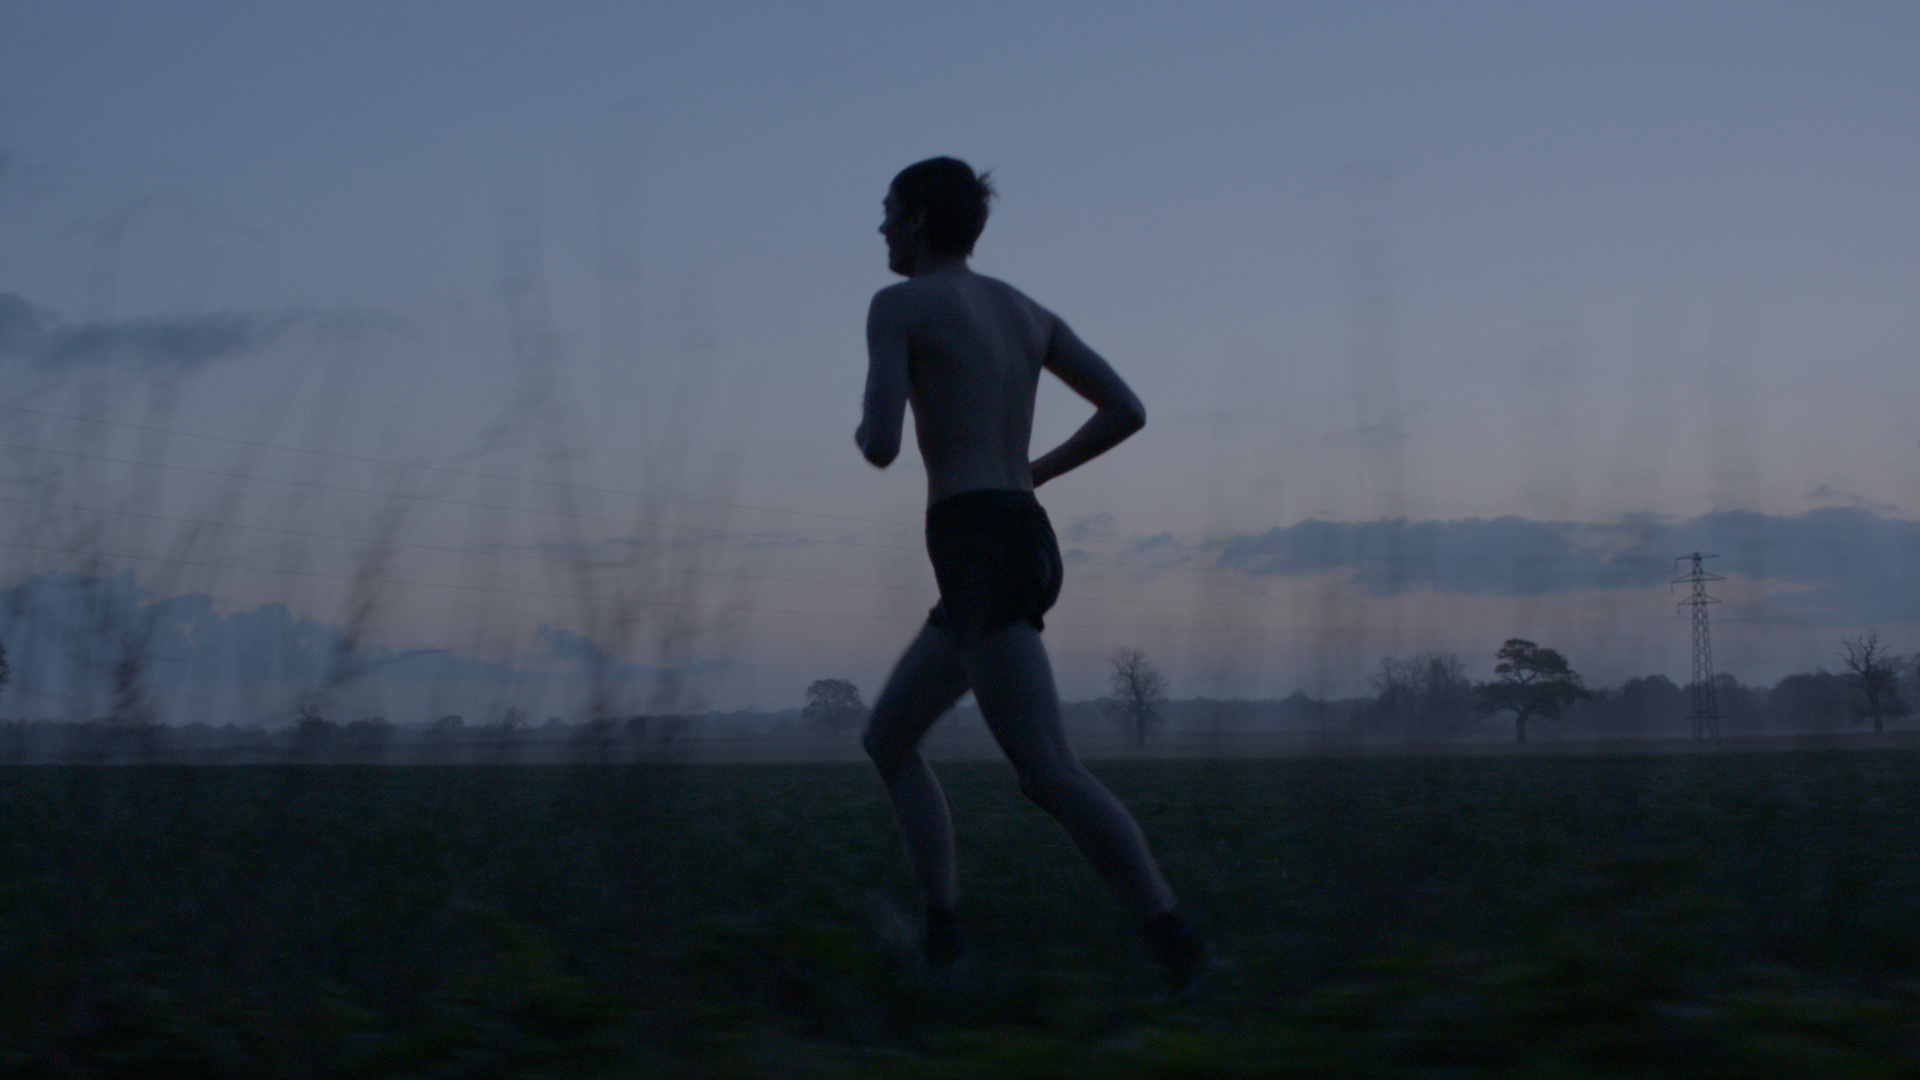 bailey tom bailey_circadian rhythms _ dawn run 2.jpg